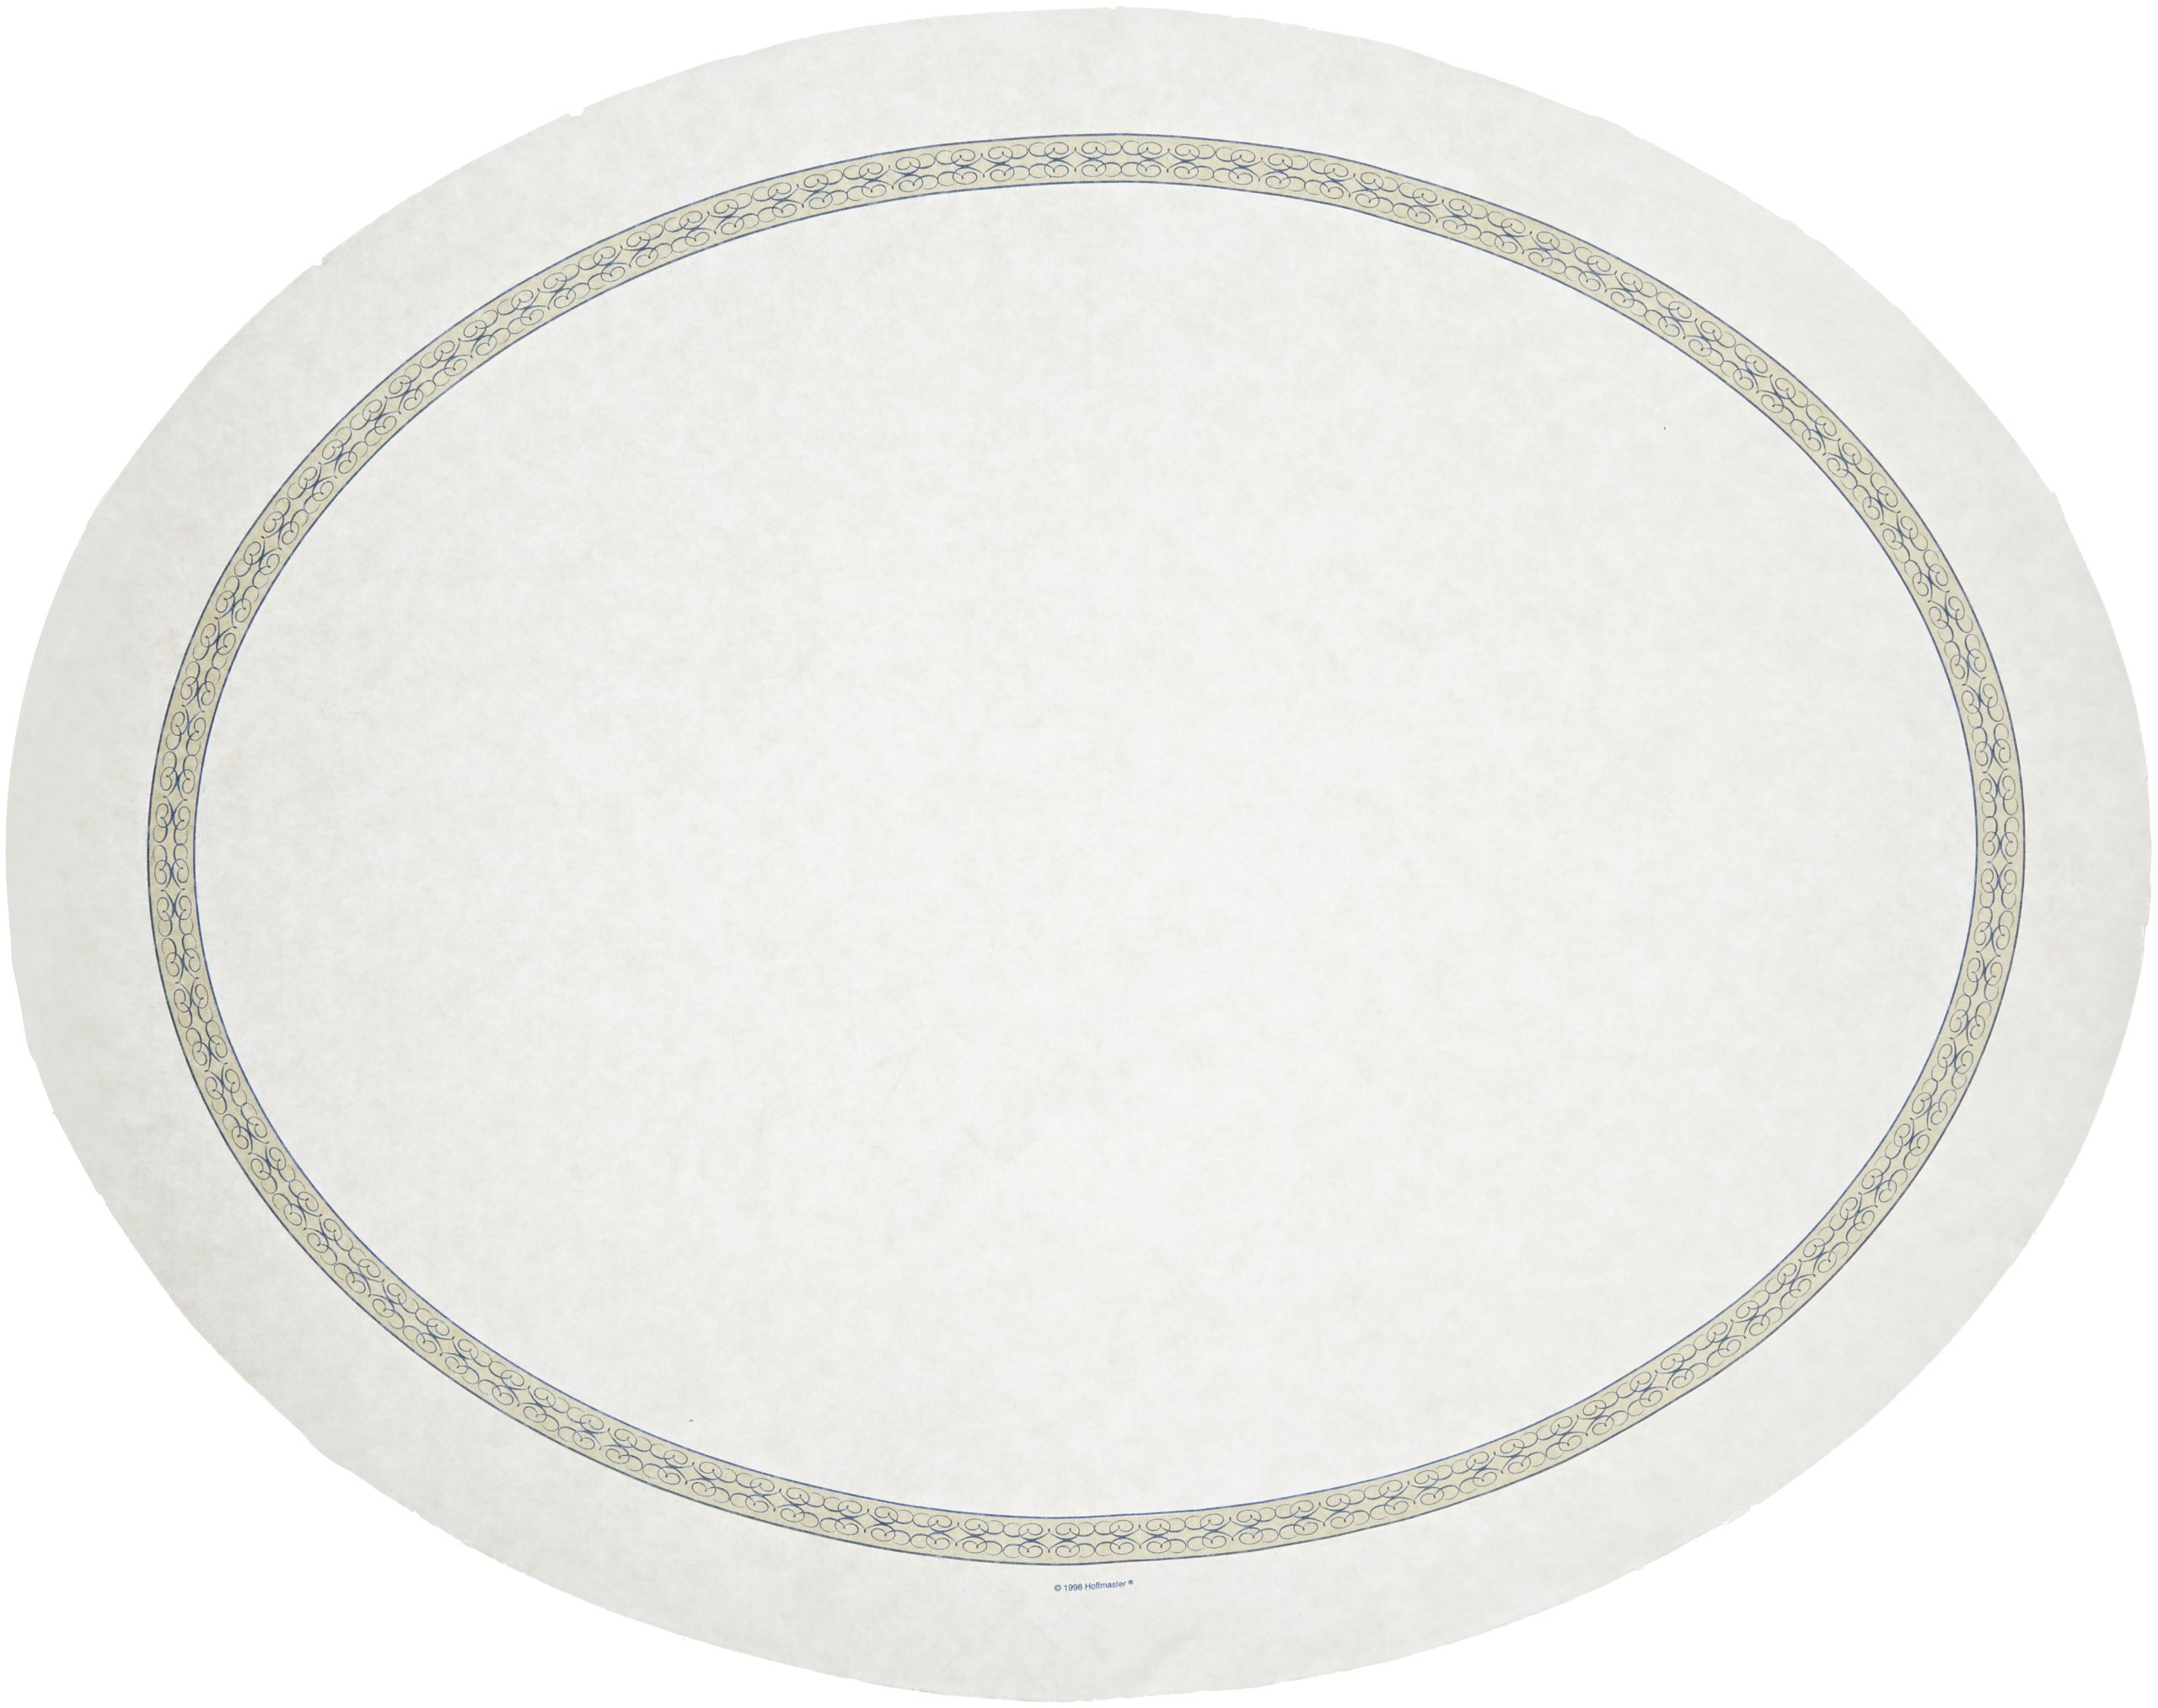 Hoffmaster 428970 Oval Nonskid Traymat, 24'' Length x 19'' Width, Regal (Case of 500)